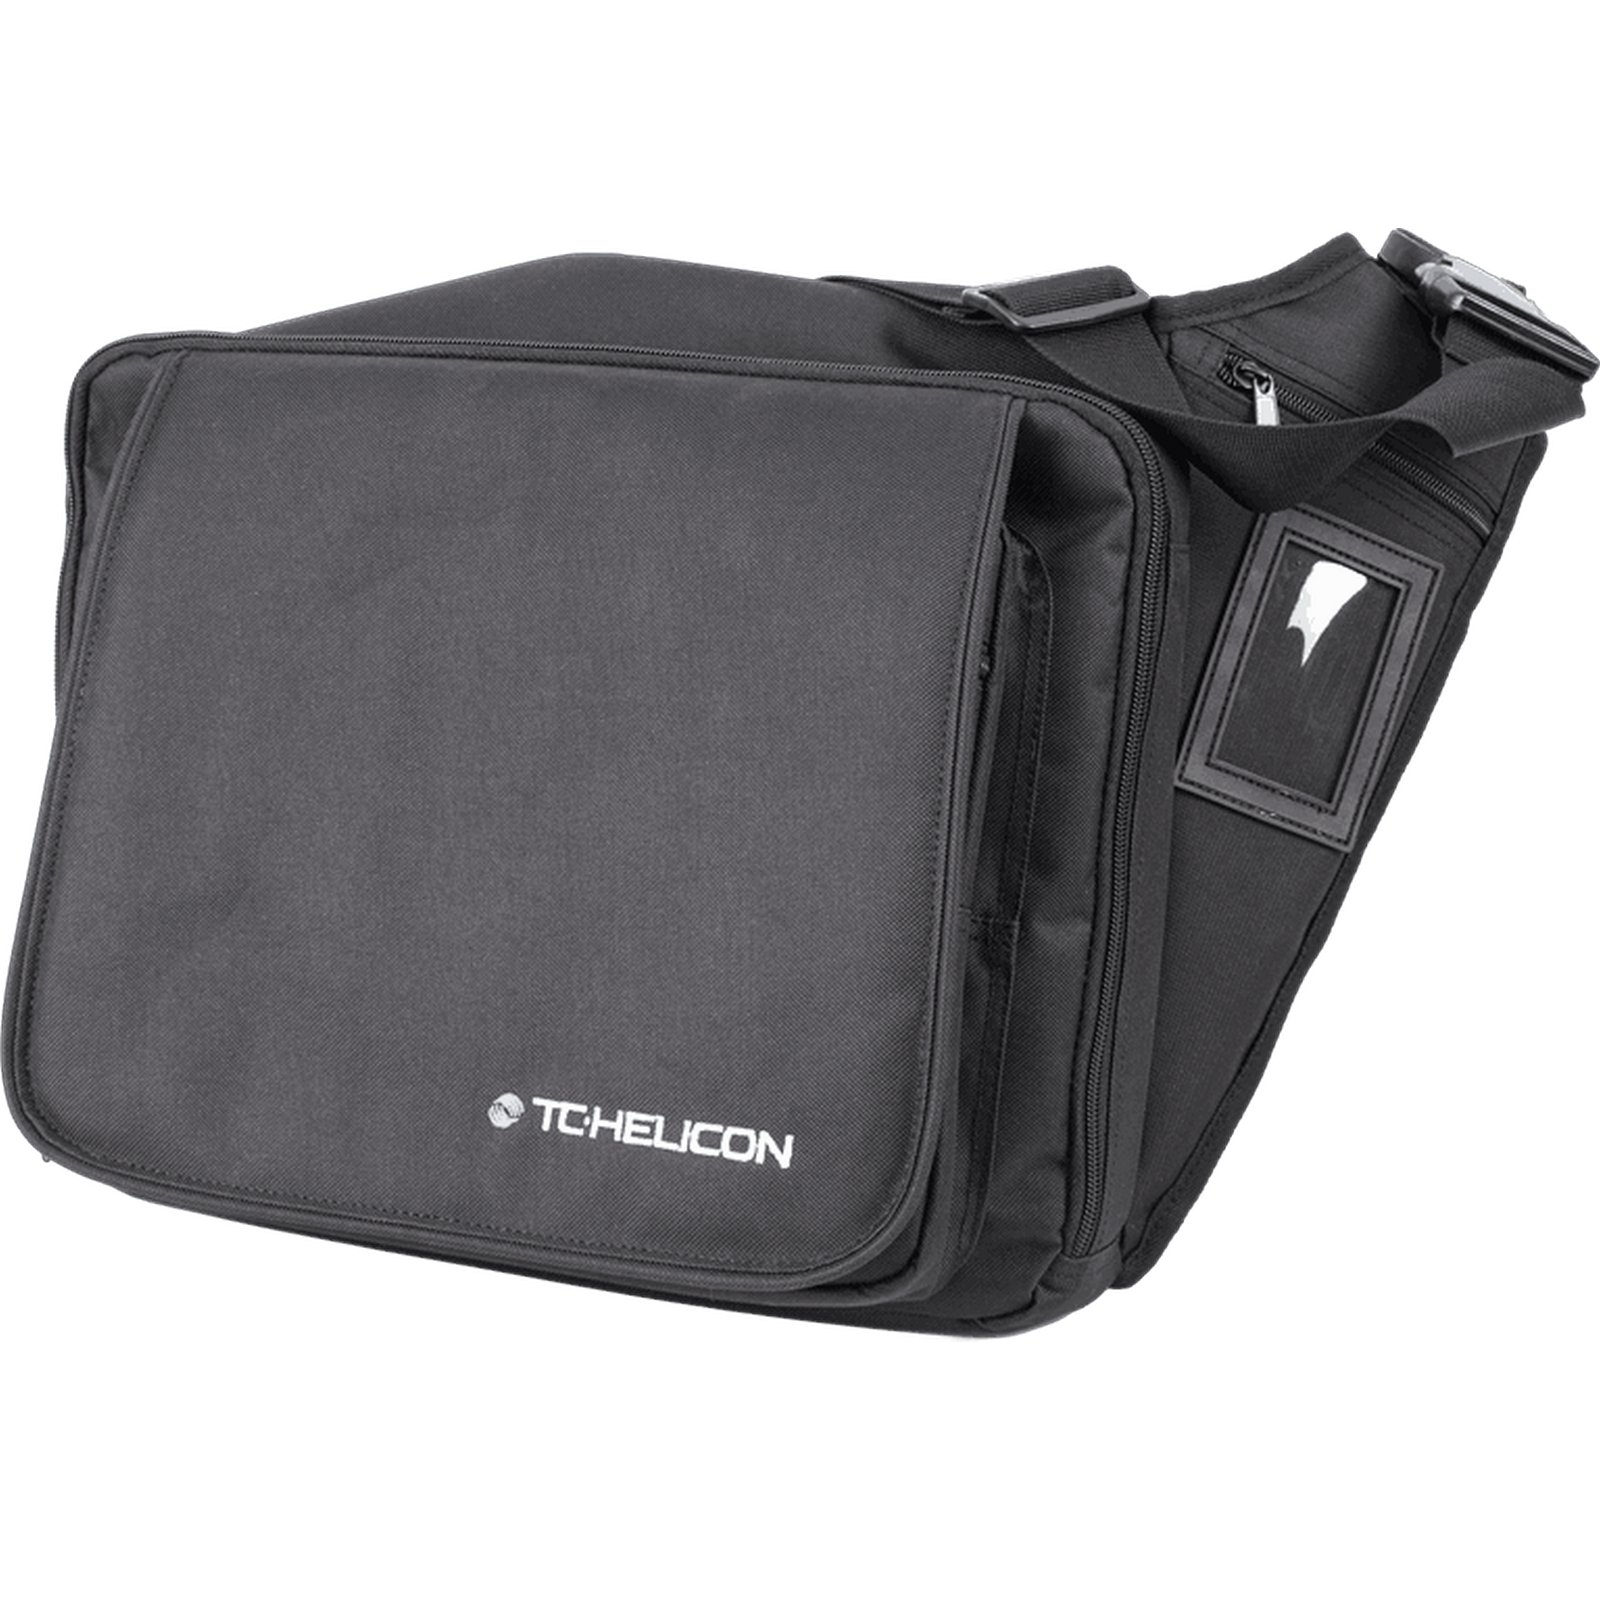 TC-Helicon VoiceLive 3 Gigbag